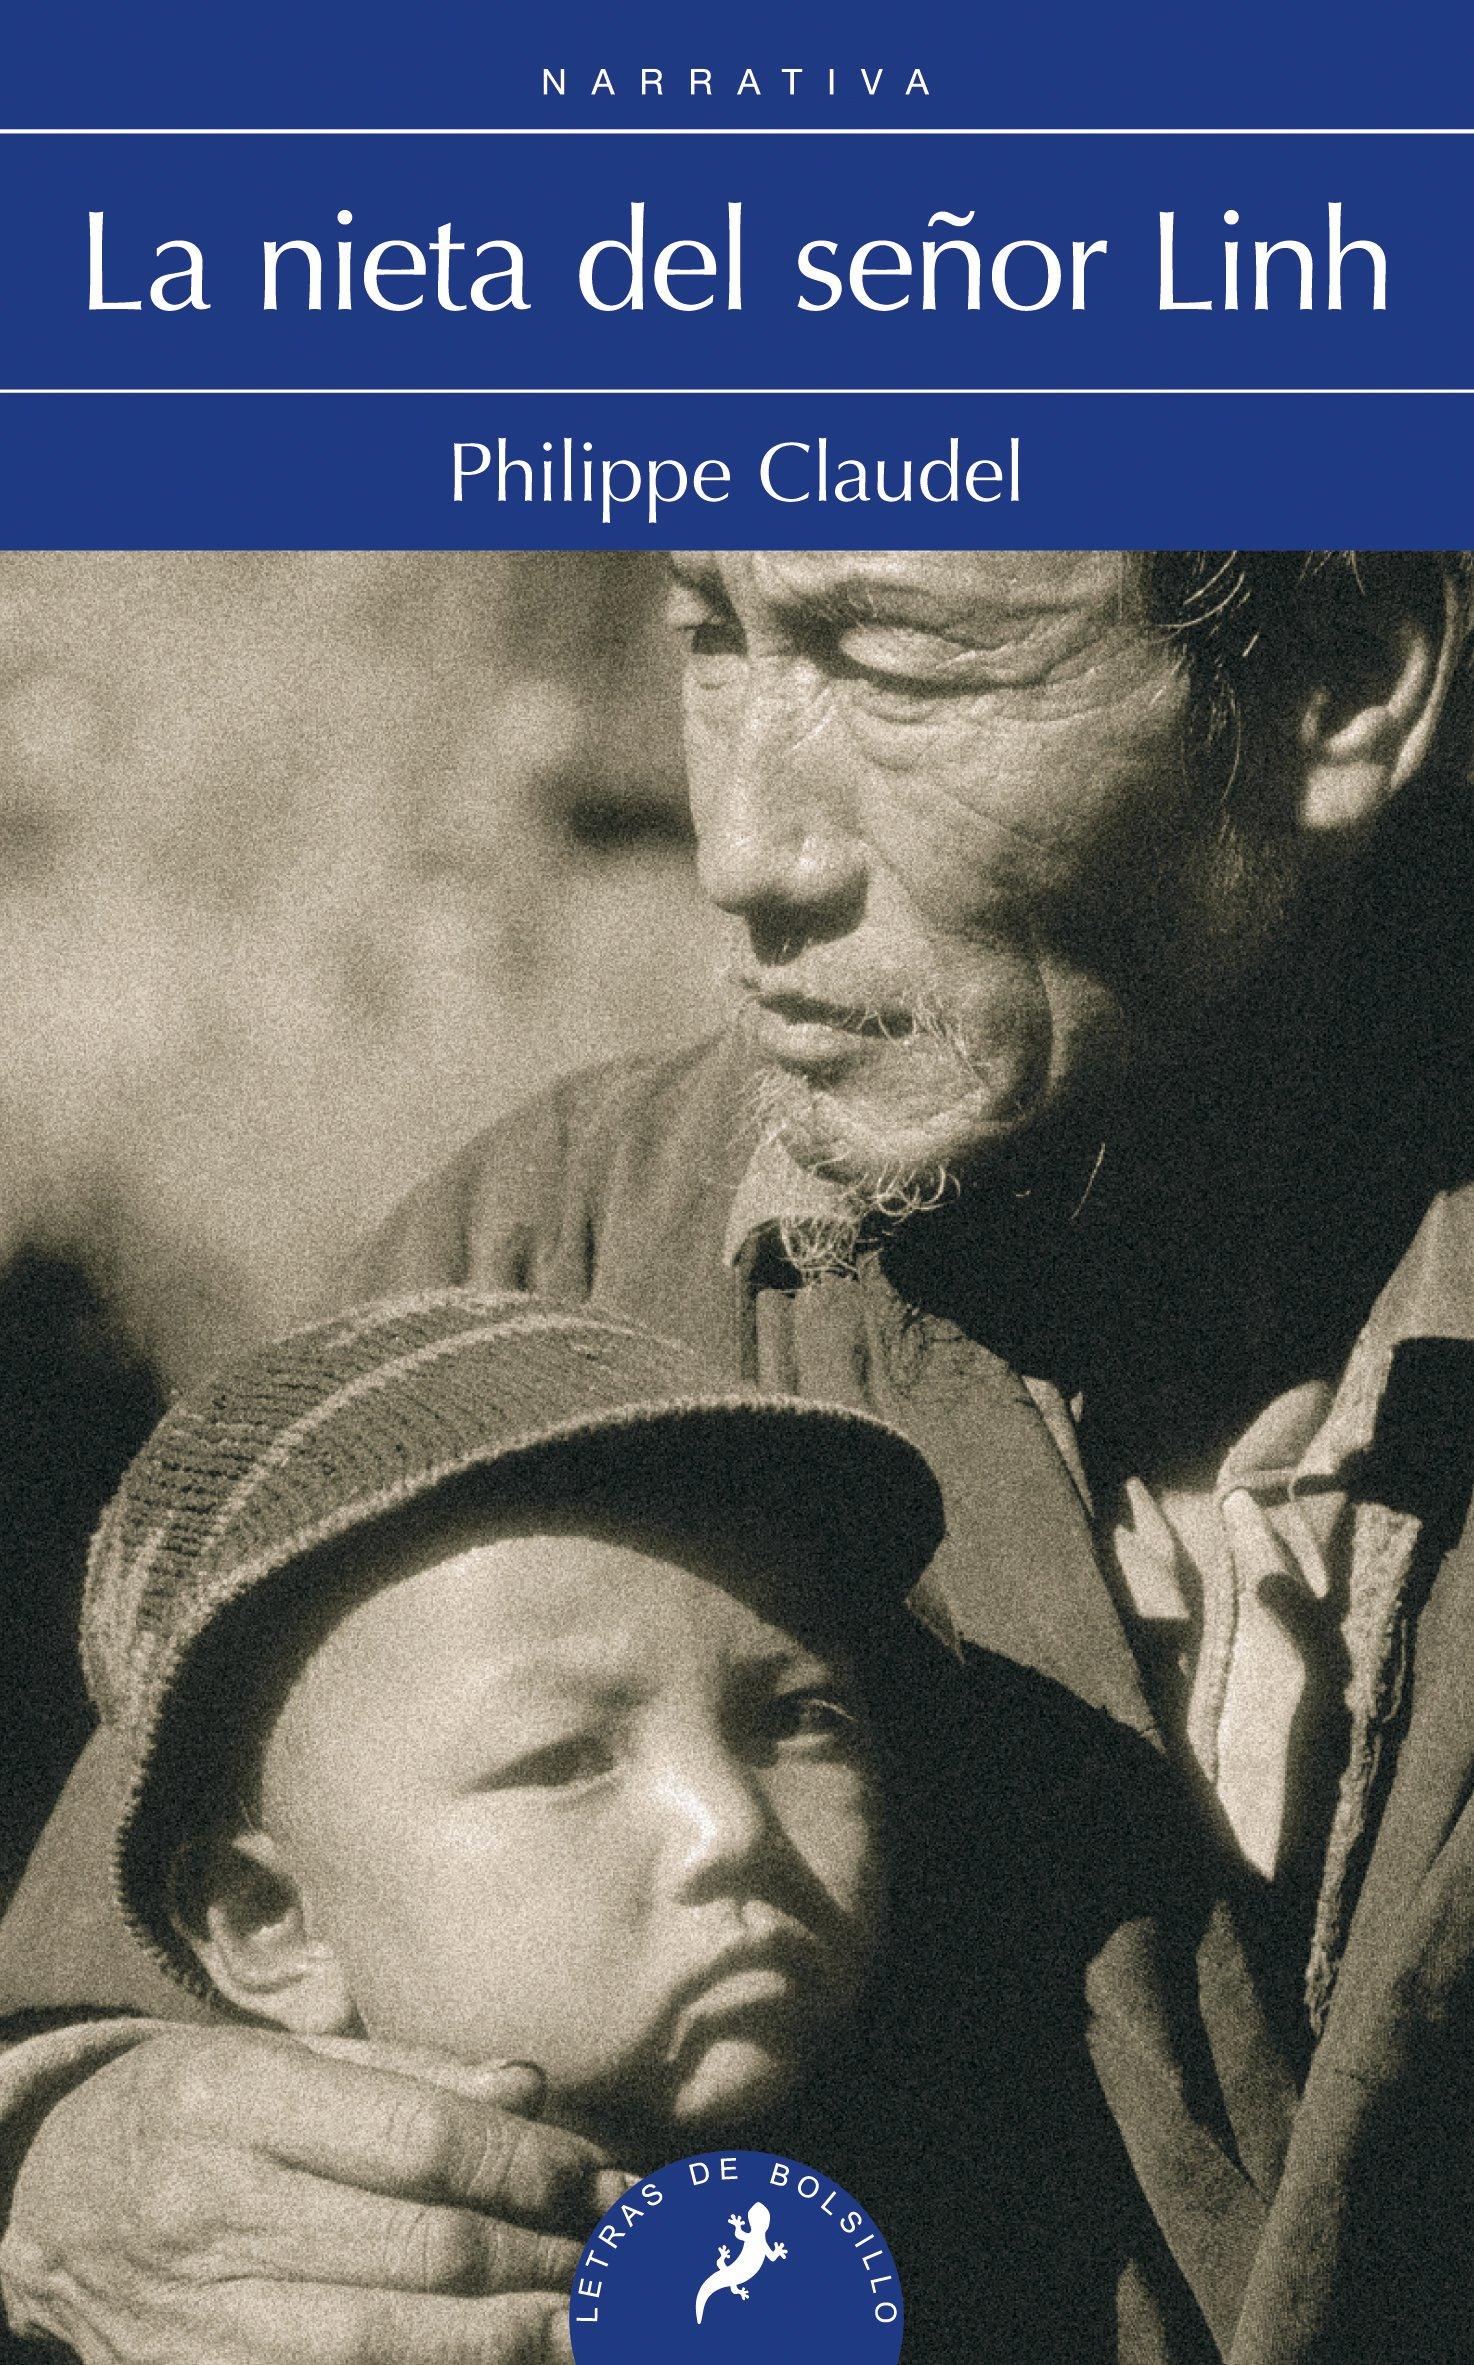 Nieta del senor Linh (Spanish Edition): Philippe Claudel, Salamandra: 9788498385151: Amazon.com: Books